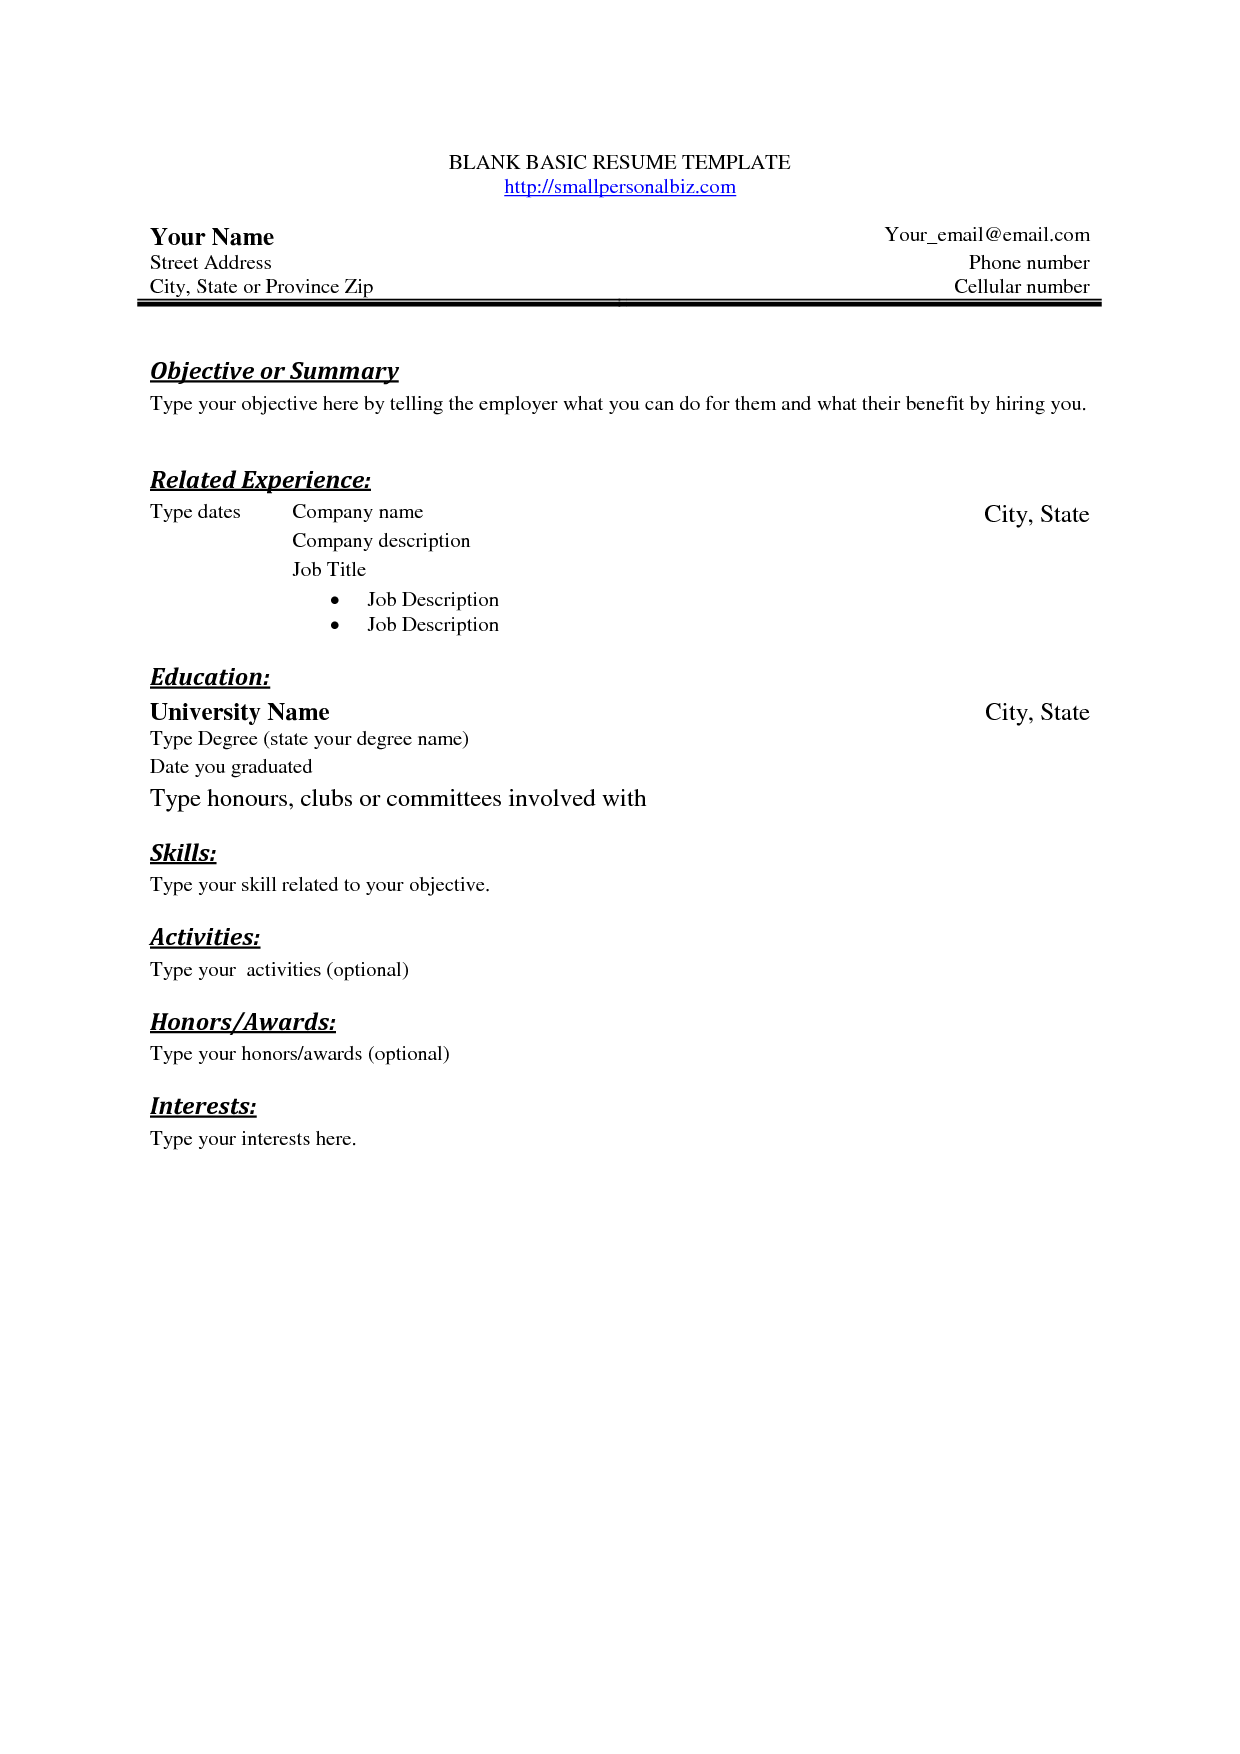 Basic Resume Template For High School Students  HttpWww